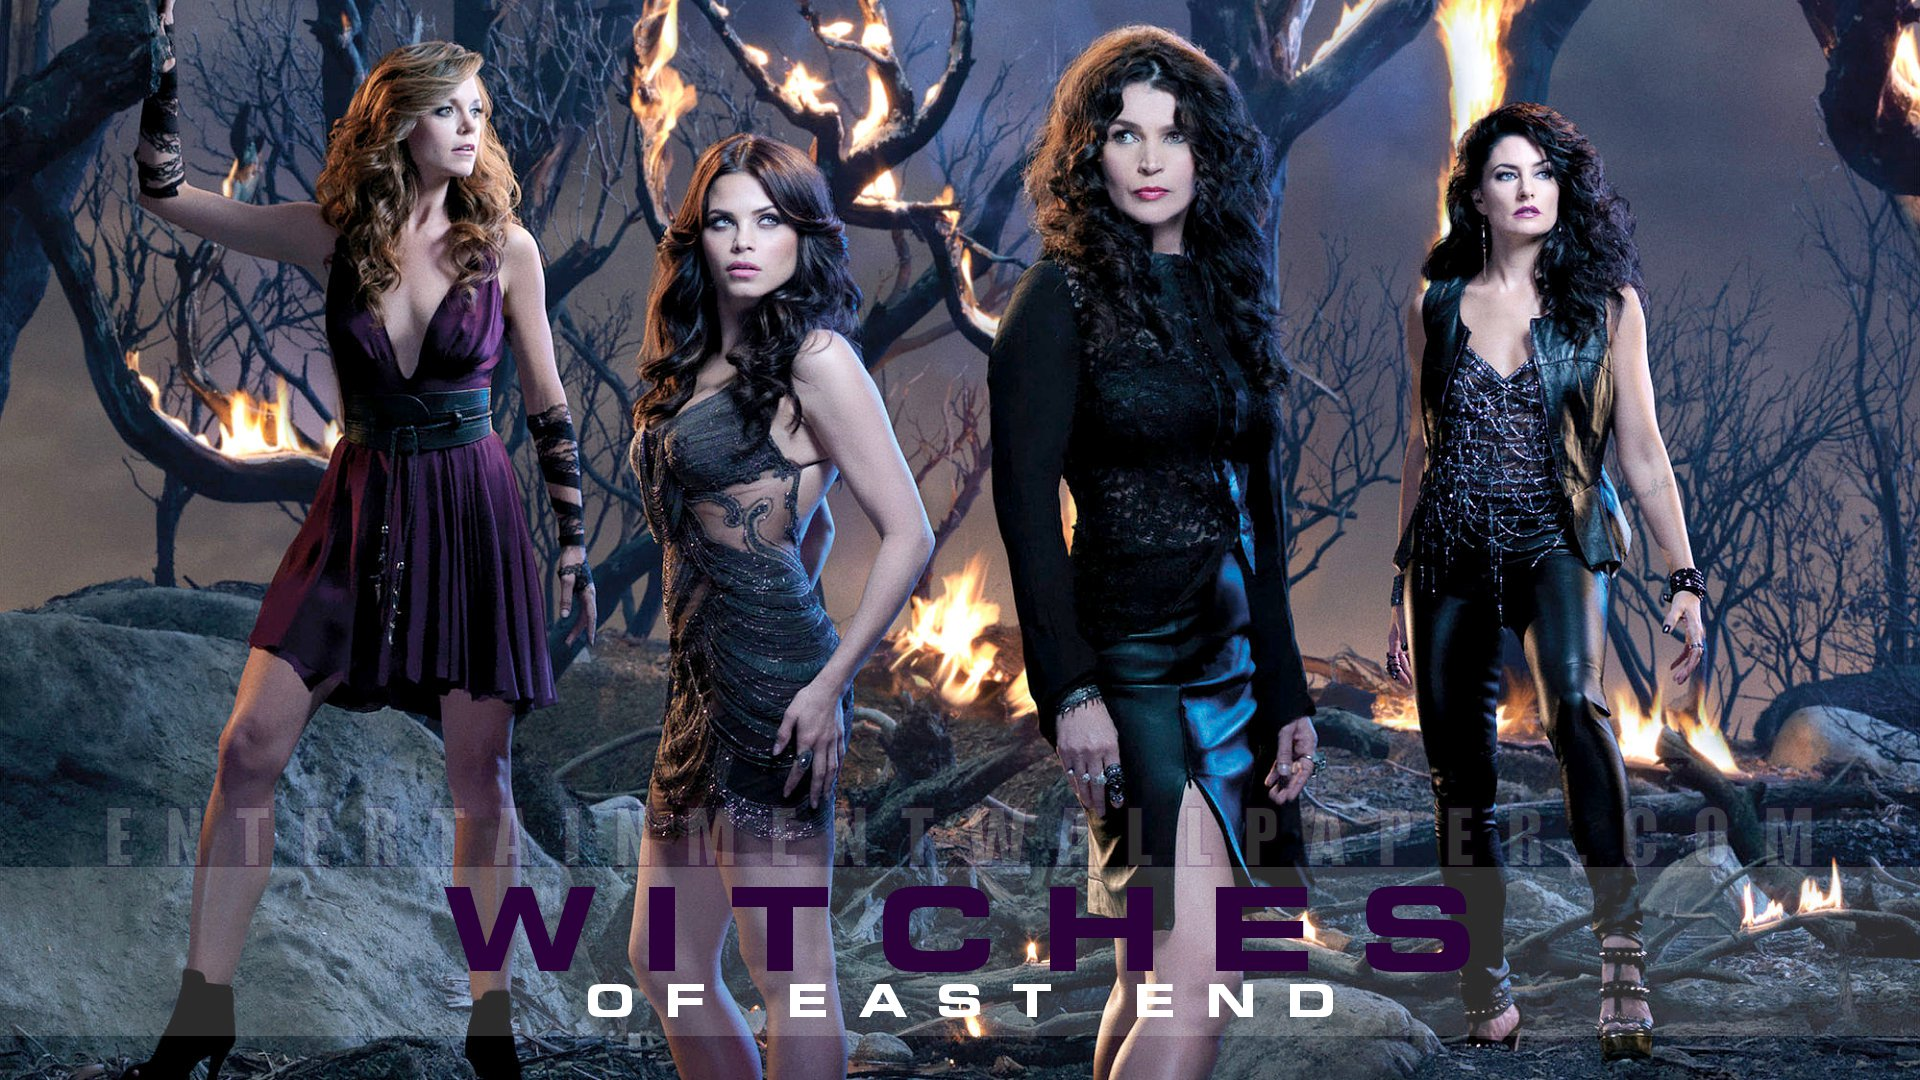 Witches of East End - Witches of East End Wallpaper ...